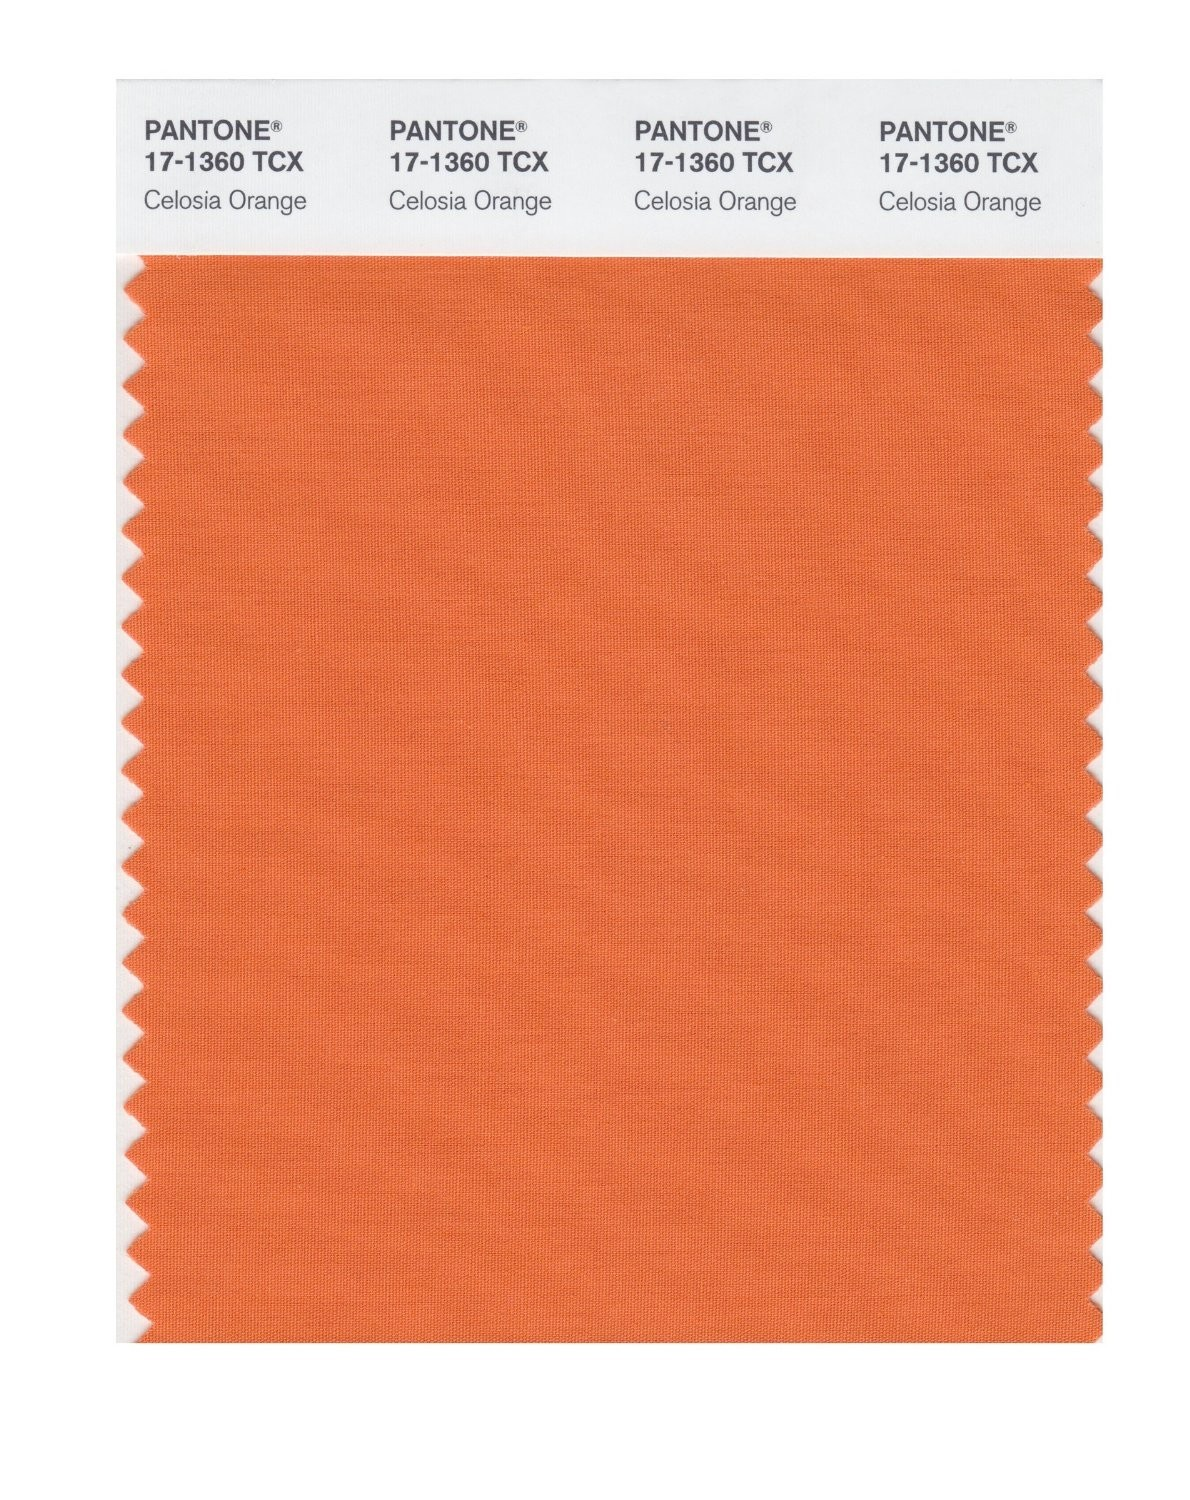 Pantone 17-1360 TCX Swatch Card Celosia Orange